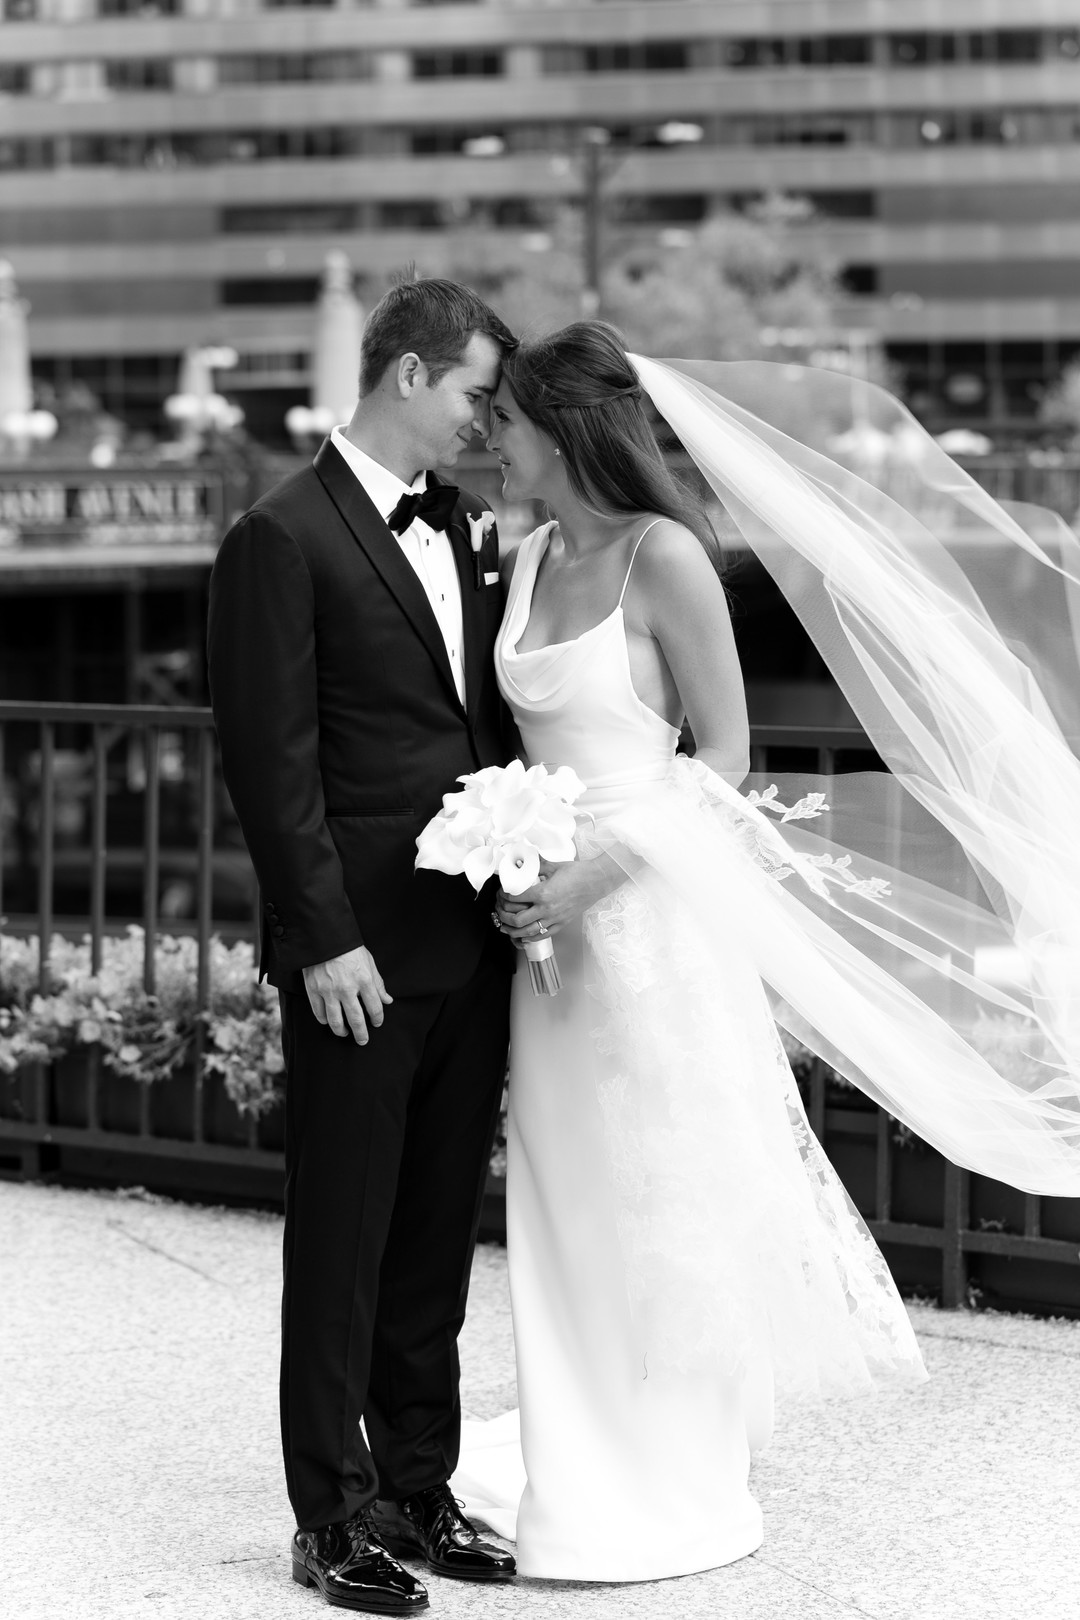 Iconic Chicago Wedding at The Art Institute of Chicago captured by Emilia Jane Photography. See more creative wedding ideas at CHItheeWED.com!